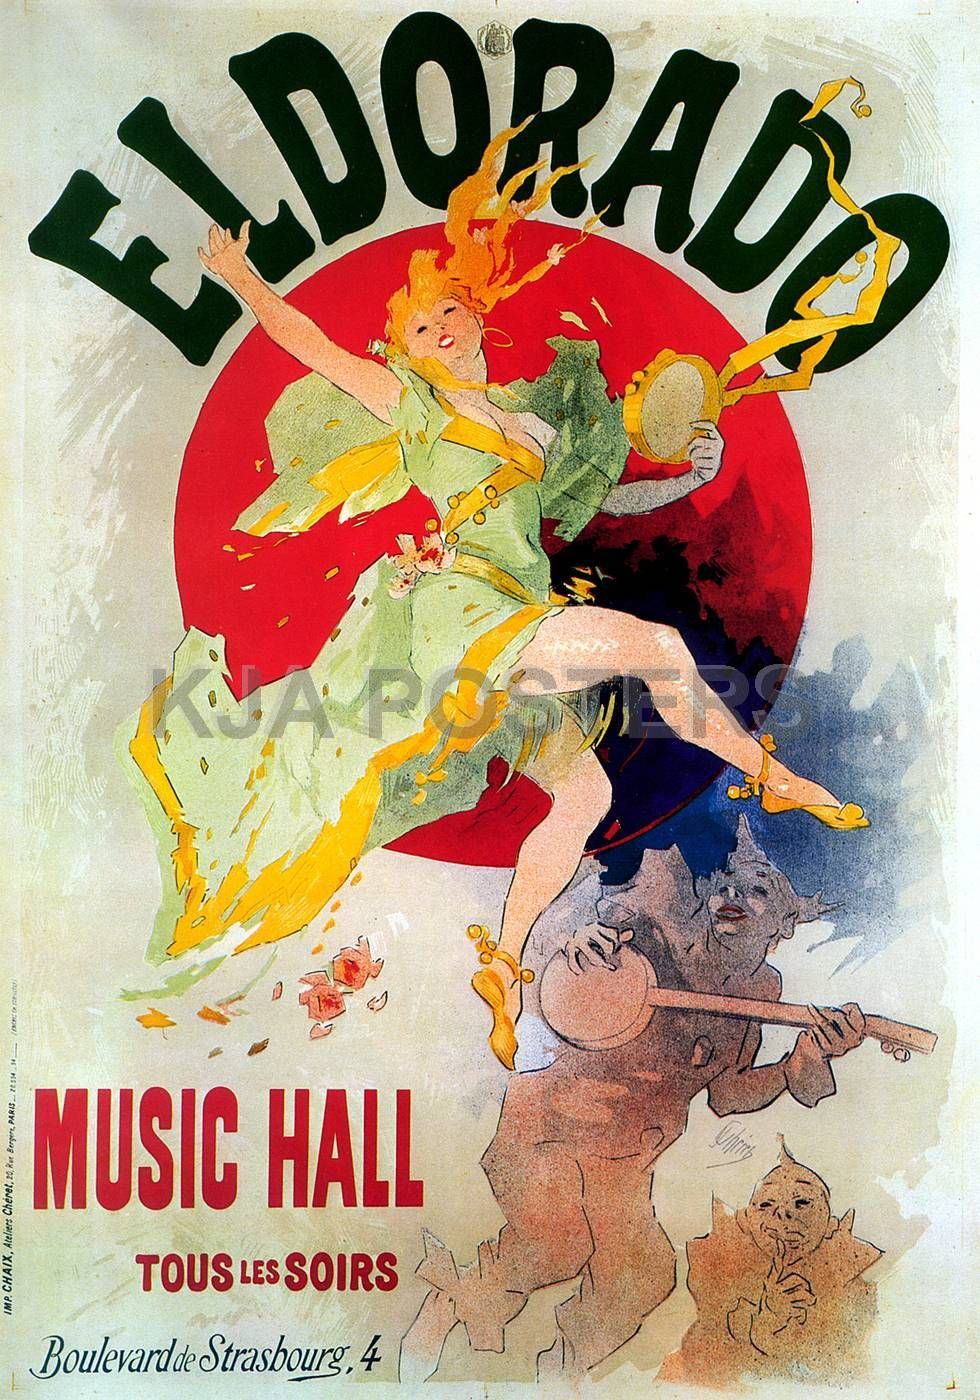 Vintage posters eldorado music hall jules cheret french vintage posters eldorado music hall jules cheret french advertising posters jules cheret french advertising posters fandeluxe Gallery